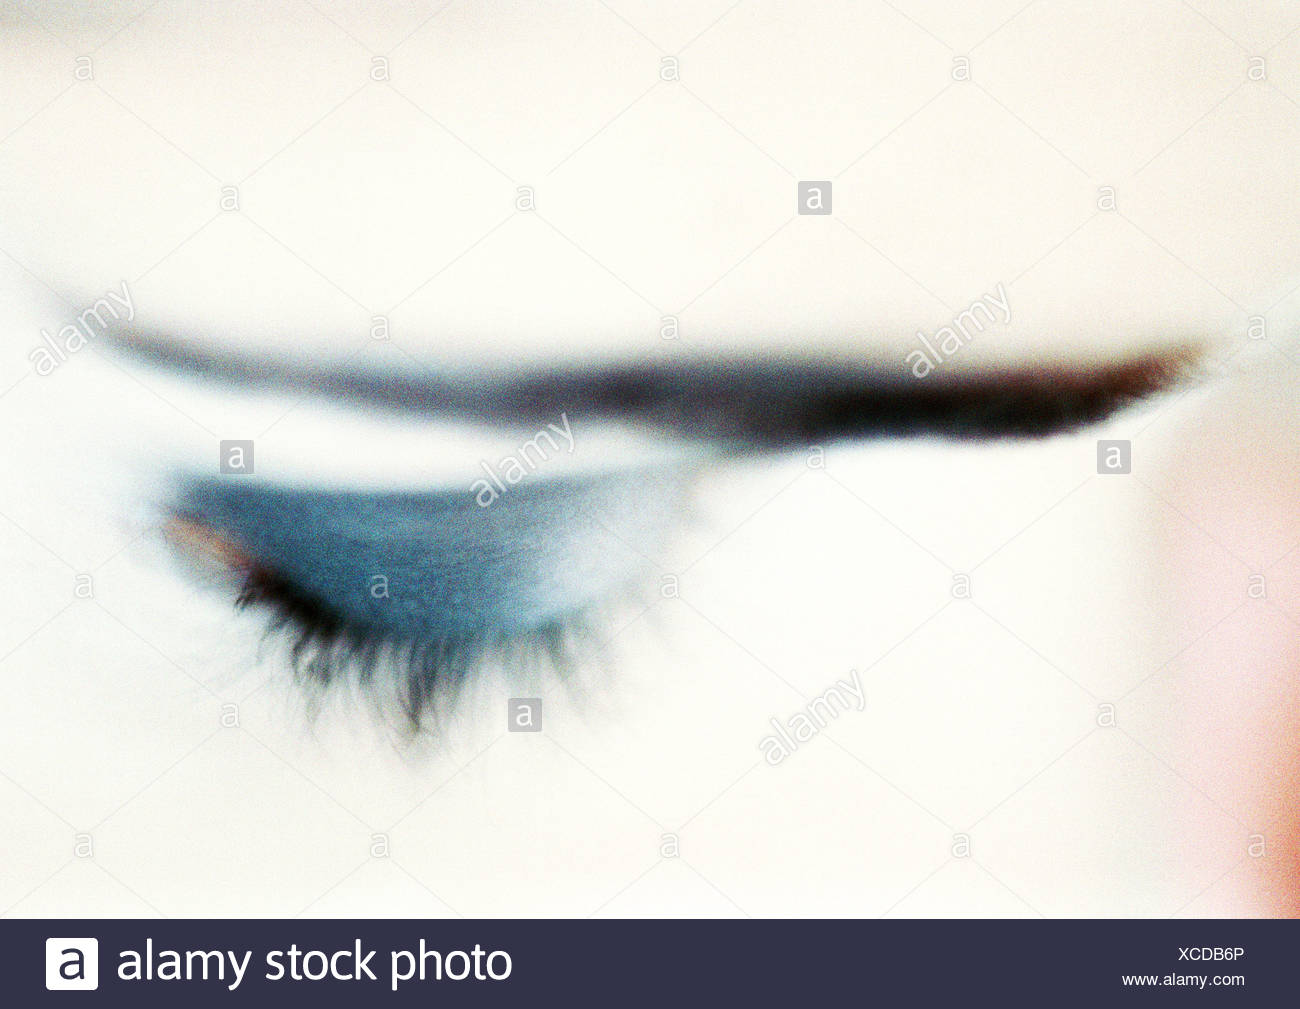 Woman's closed eye with blue eye shadow, close-up, high angle view, blurry. - Stock Image